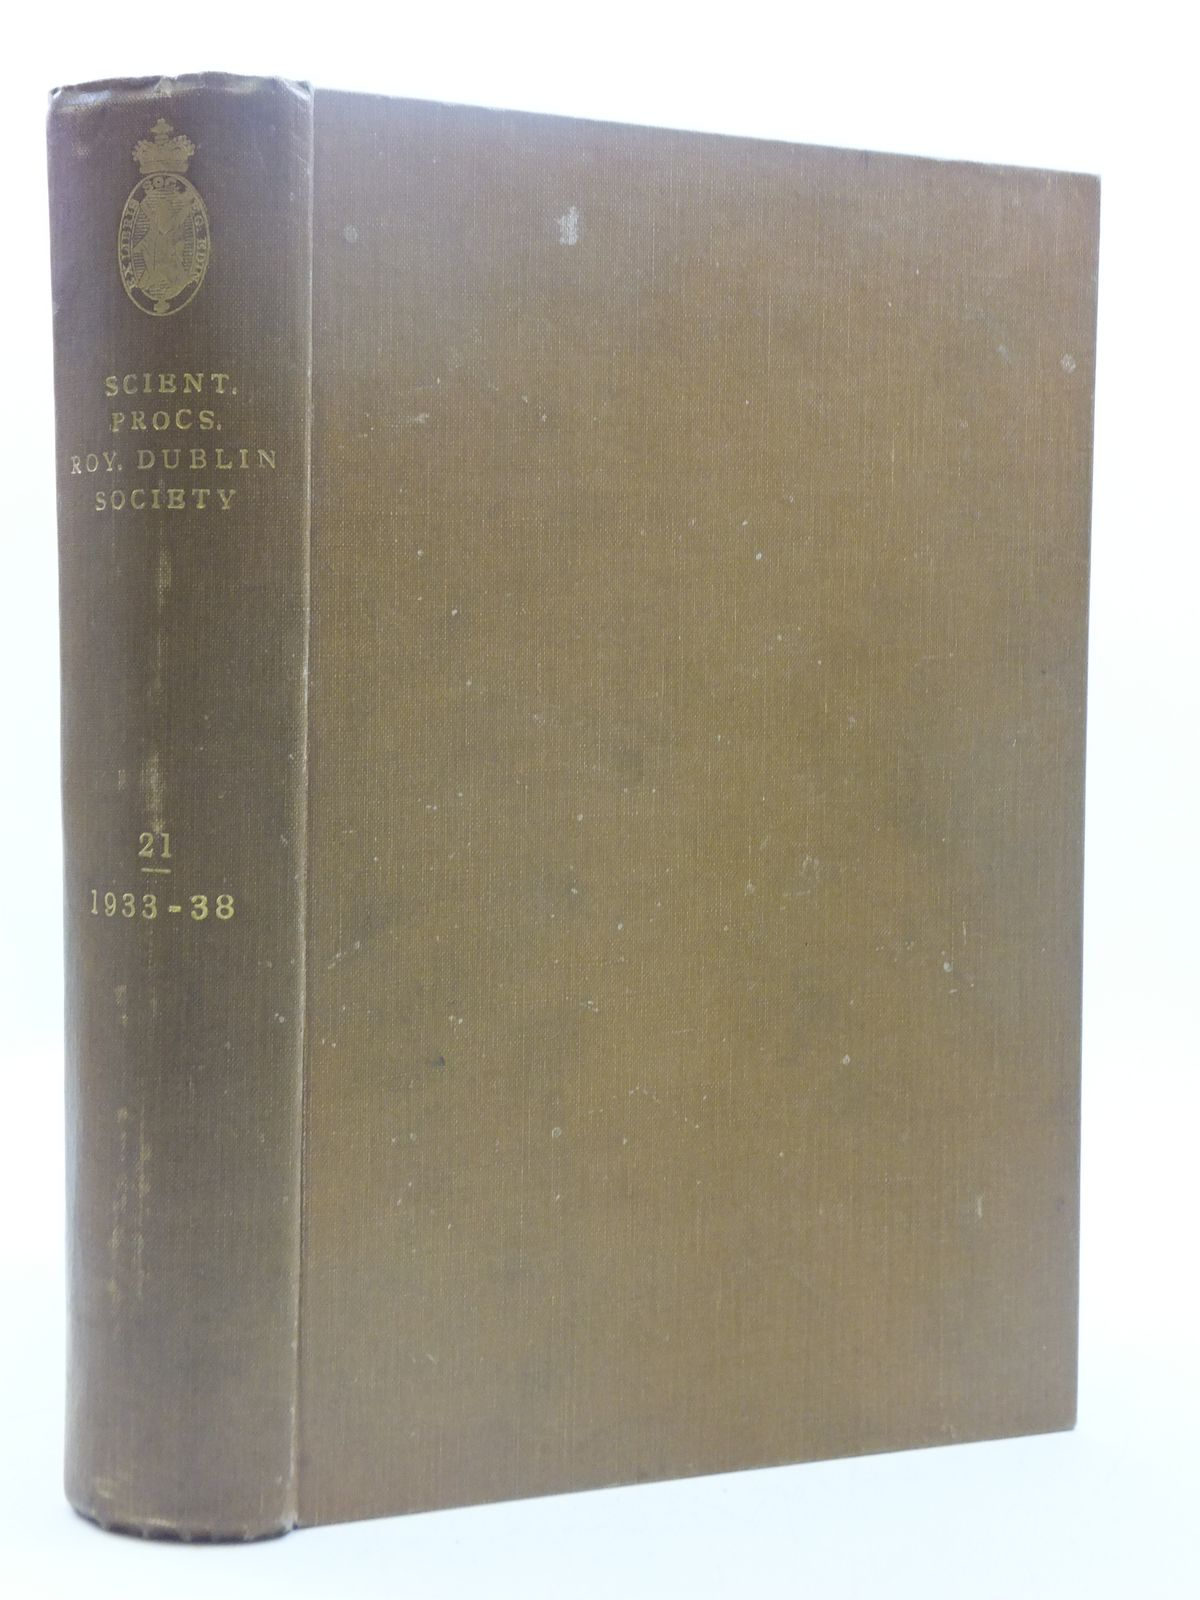 Photo of THE SCIENTIFIC PROCEEDINGS OF THE ROYAL DUBLIN SOCIETY VOLUME 21 (1933-1938) published by Royal Dublin Society (STOCK CODE: 1605207)  for sale by Stella & Rose's Books